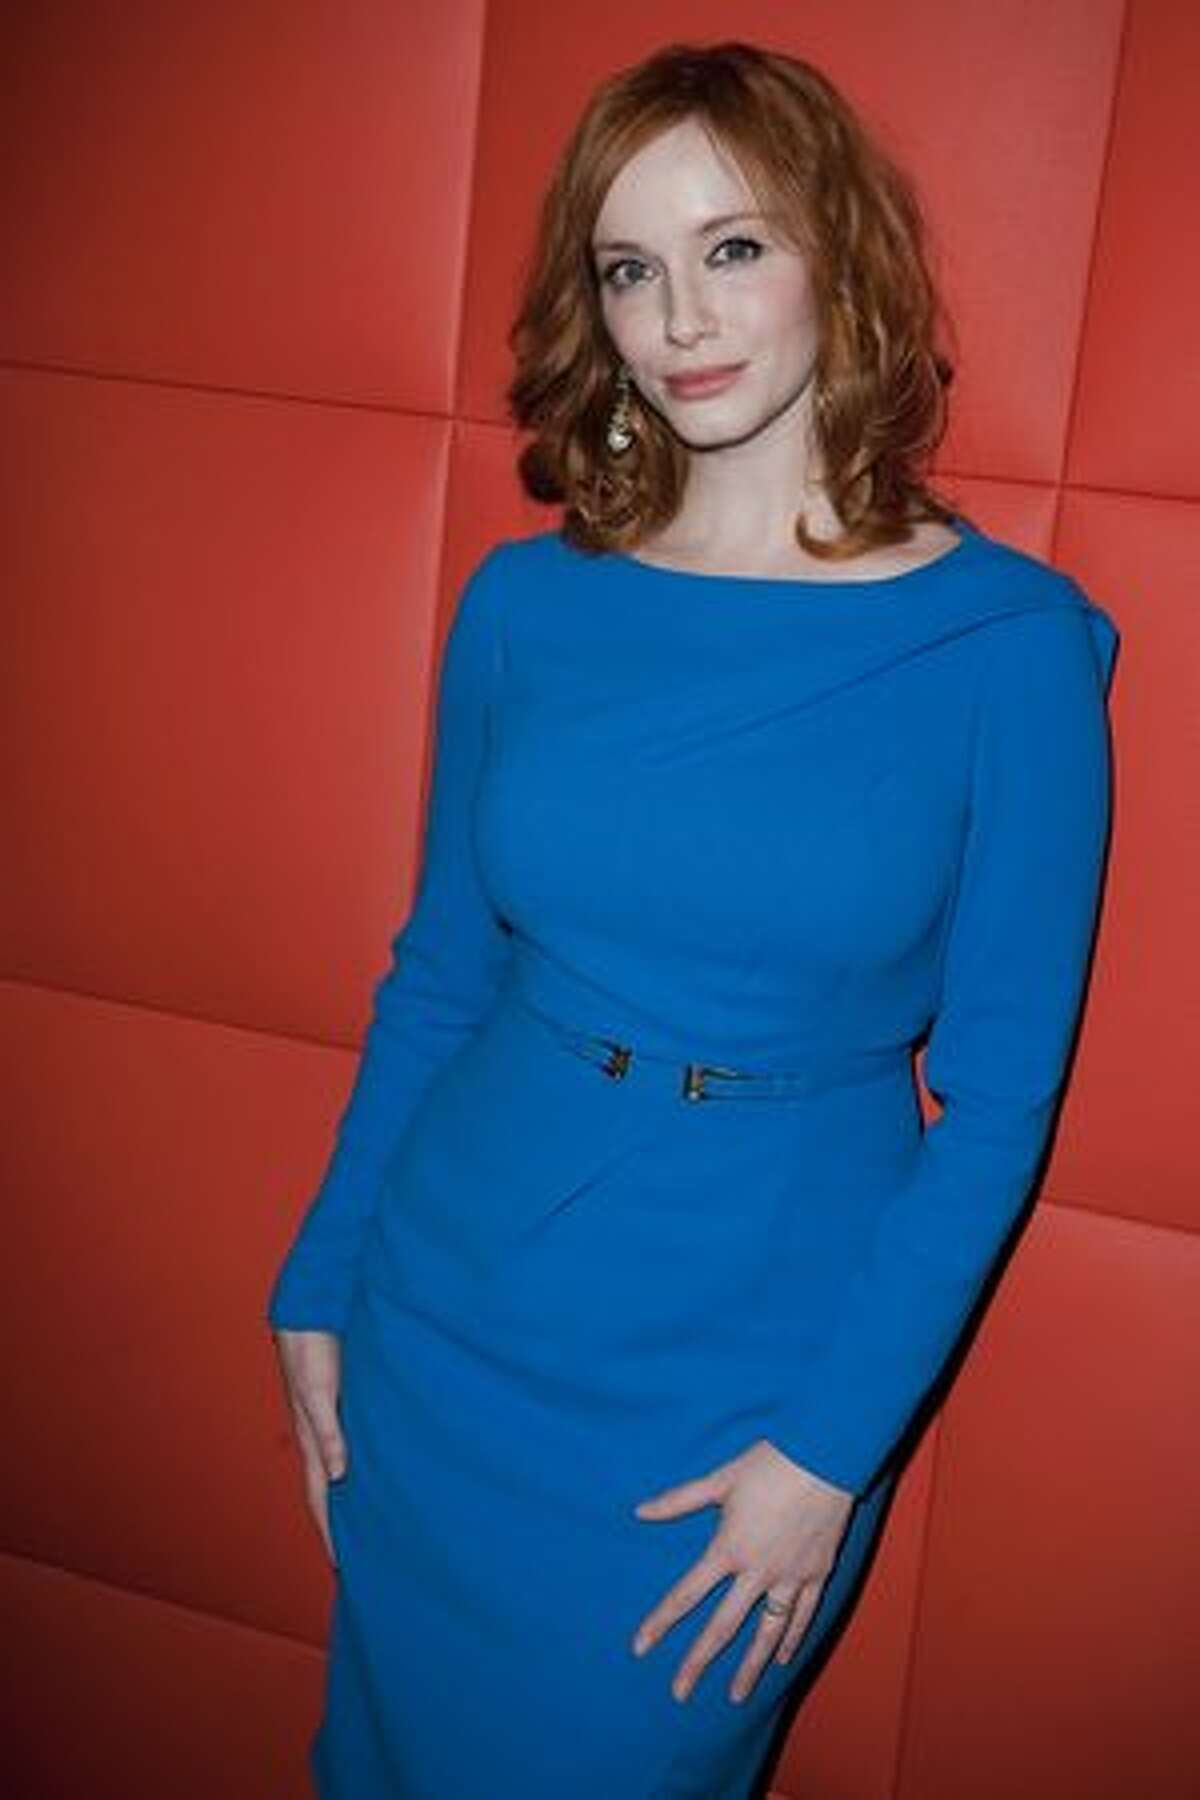 PARIS, FRANCE - Actor Christina Hendricks poses during the AMC - Mad Men Gala Event at Hotel Royal Monceau Raffle on Tuesday in Paris, France.